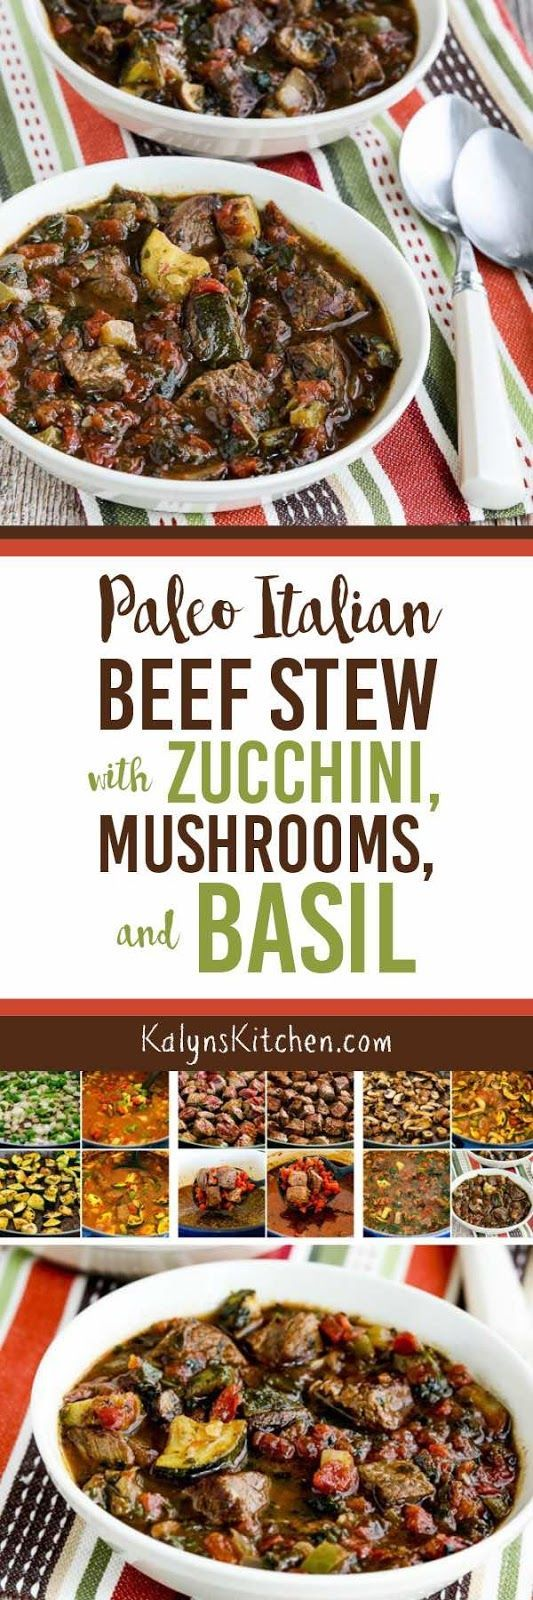 This delicious Paleo Italian Beef Stew with Zucchini, Mushrooms, and Basil is also Whole 30, low-carb, Keto, low-glycemic, gluten-free, and South Beach Diet friendly! And this reheats well, so cook once and eat a few times! [found on KalynsKitchen.com]